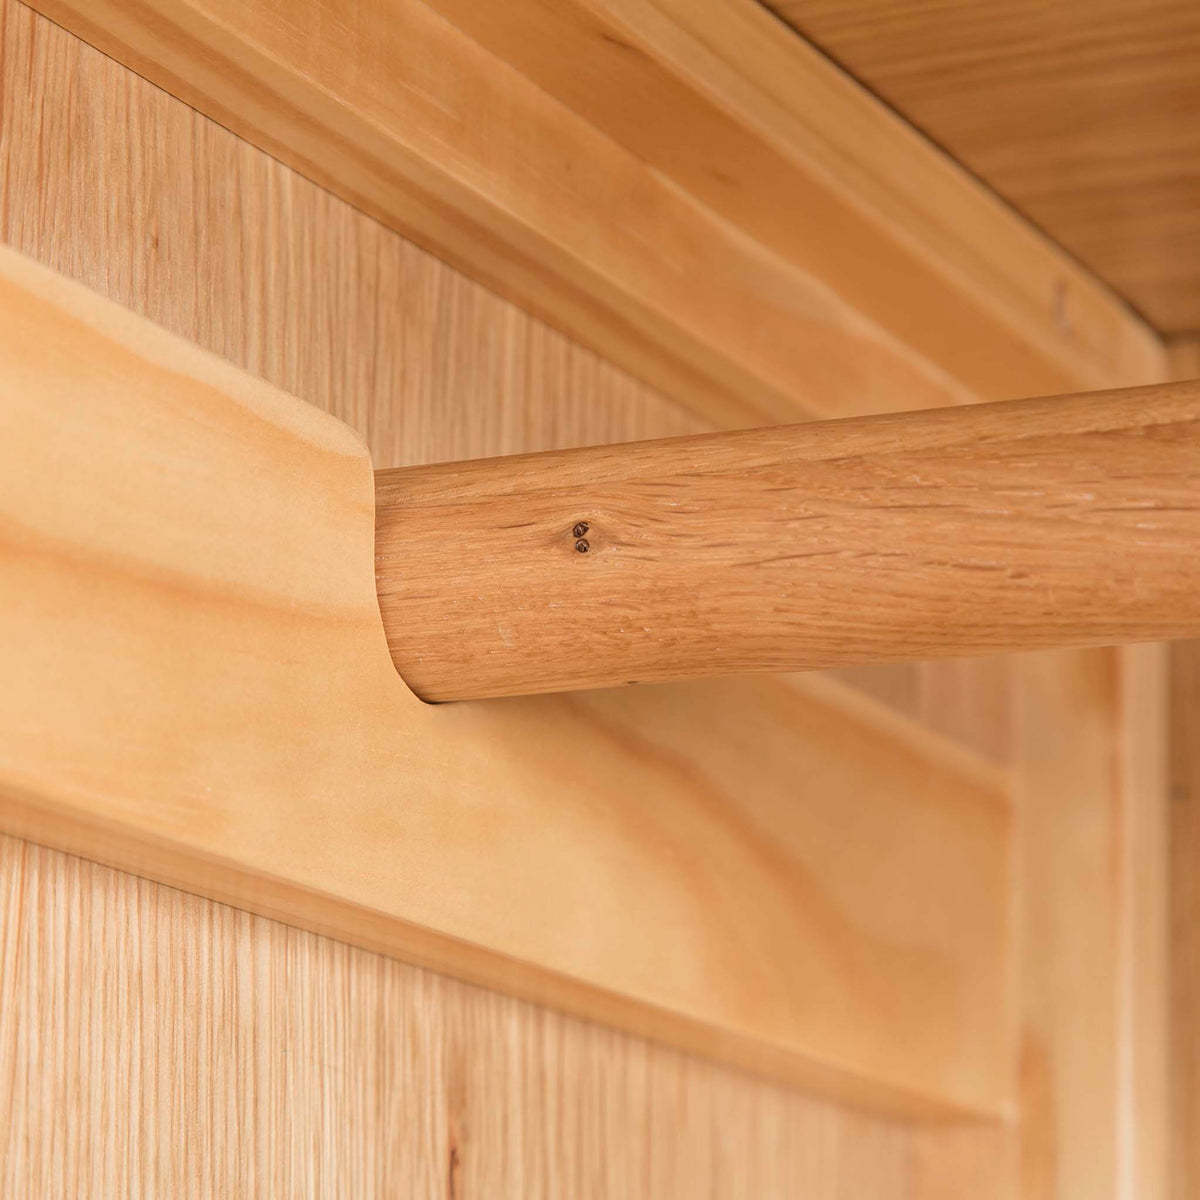 Hampshire Oak Triple Wardrobe with Drawers - Close up of end support bracket for hanging rail